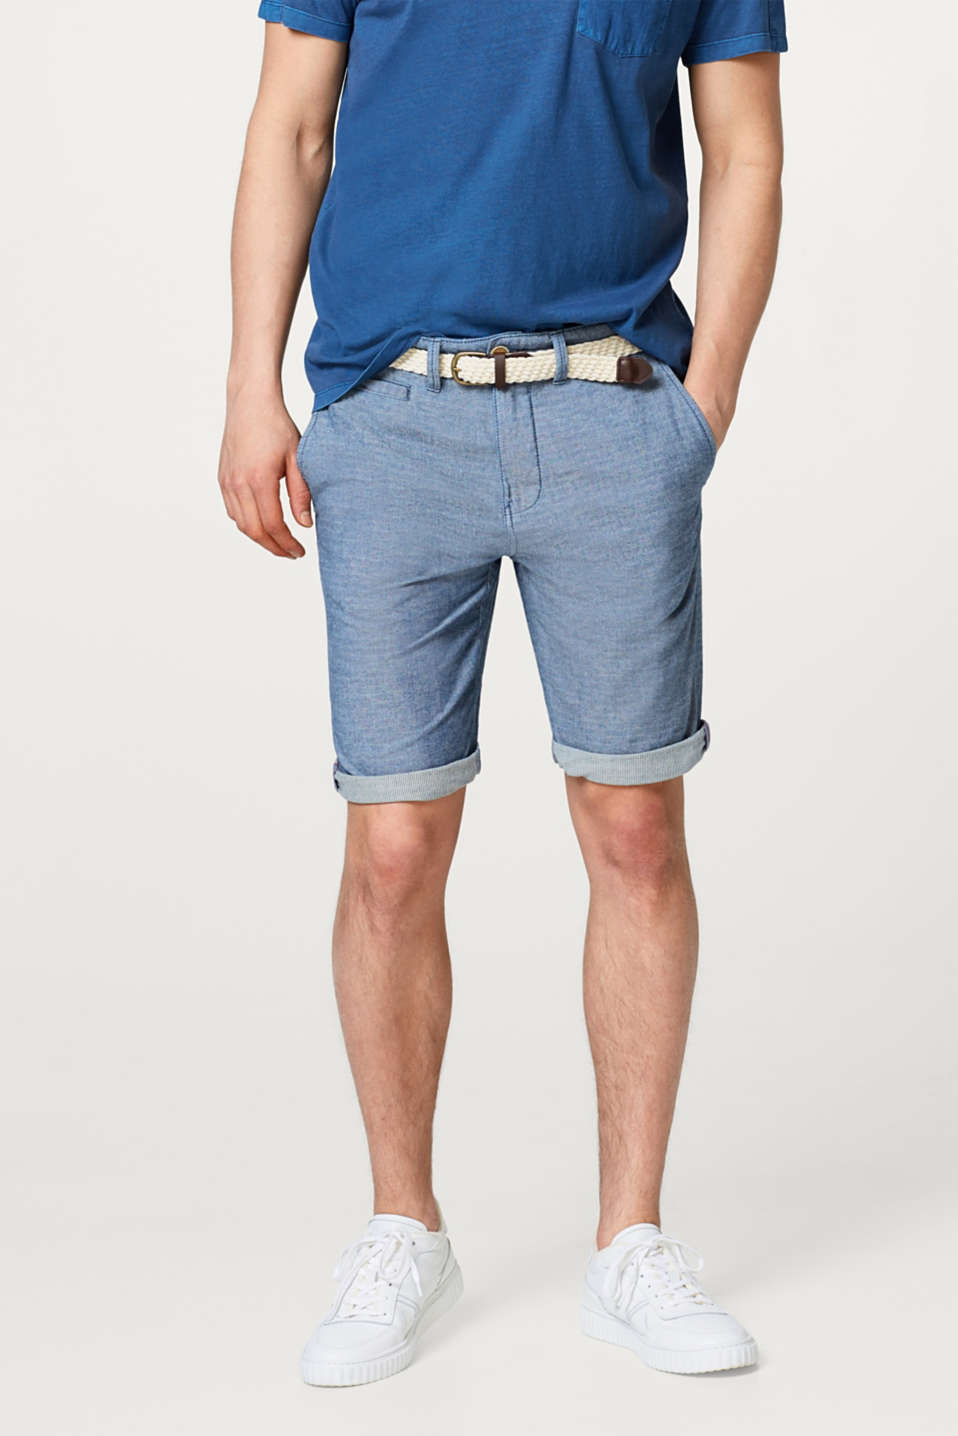 Esprit - Melange cotton shorts, with braided belt